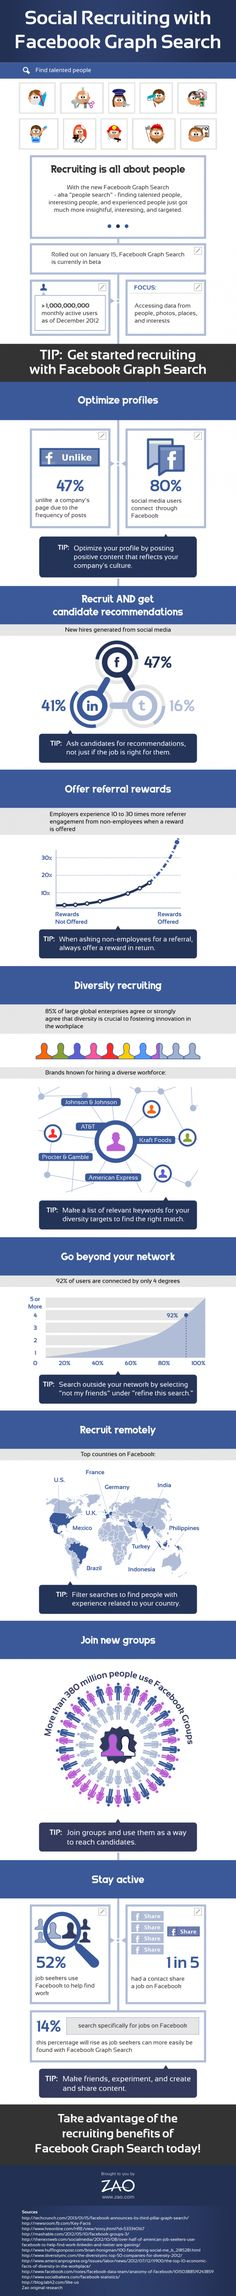 How to Recruit with Facebook Graph Search [INFOGRAPHIC].  By Undercover Recruiter.   Facebook Graph Search is an entirely new way to look at social recruiting. With a traditional content search, you may have spent time looking for candidates on the surface. Now, you can find talented people based on their interests and experiences in a targeted search. So, what exactly makes this tool so beneficial to talent acquisition?